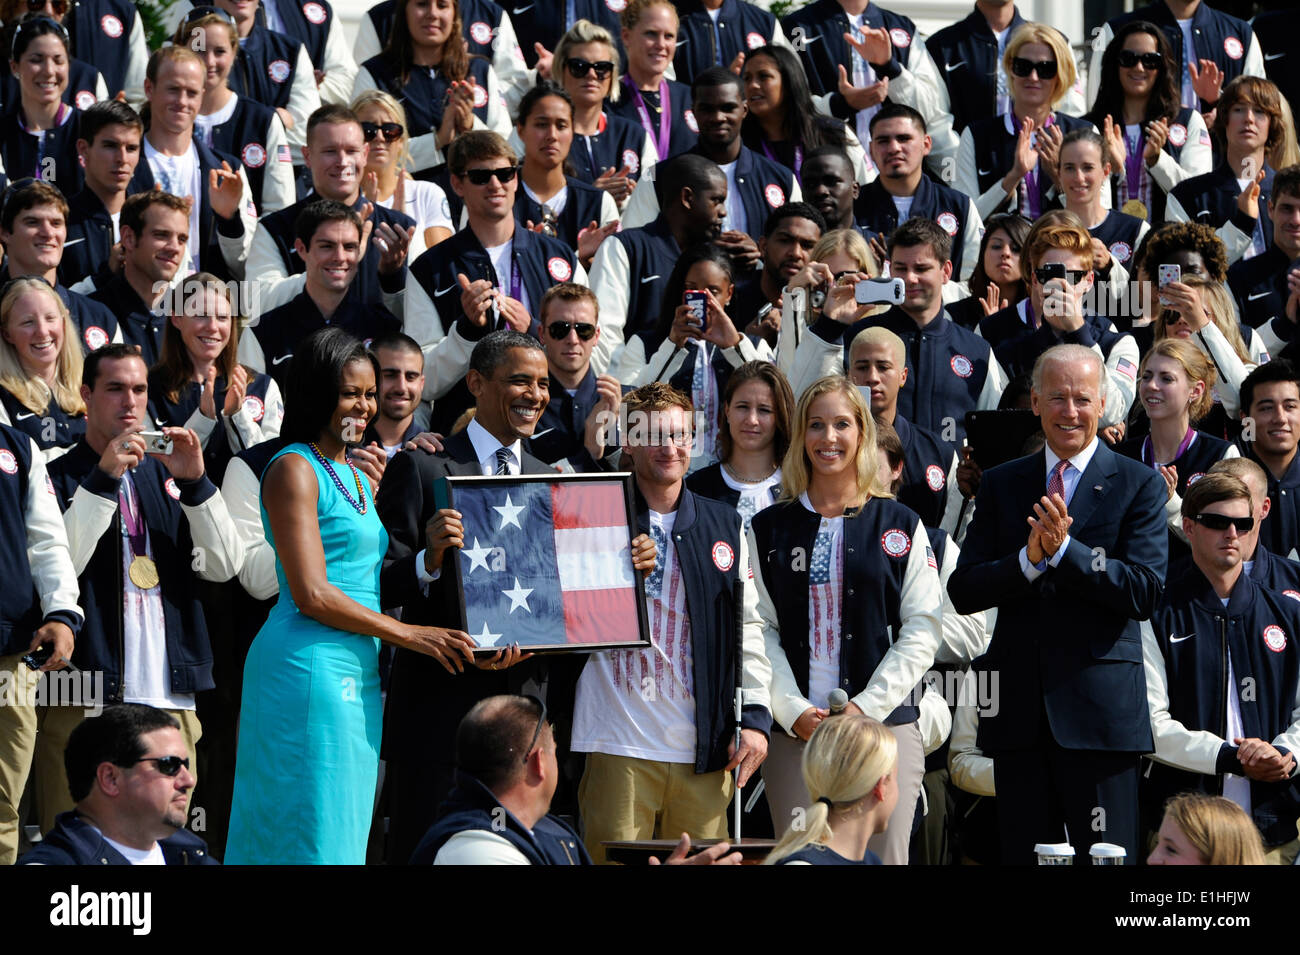 From left to right, first lady Michelle Obama, President Barack Obama, Paralympic swimmer Brad Snyder, Olympic fencer Stock Photo